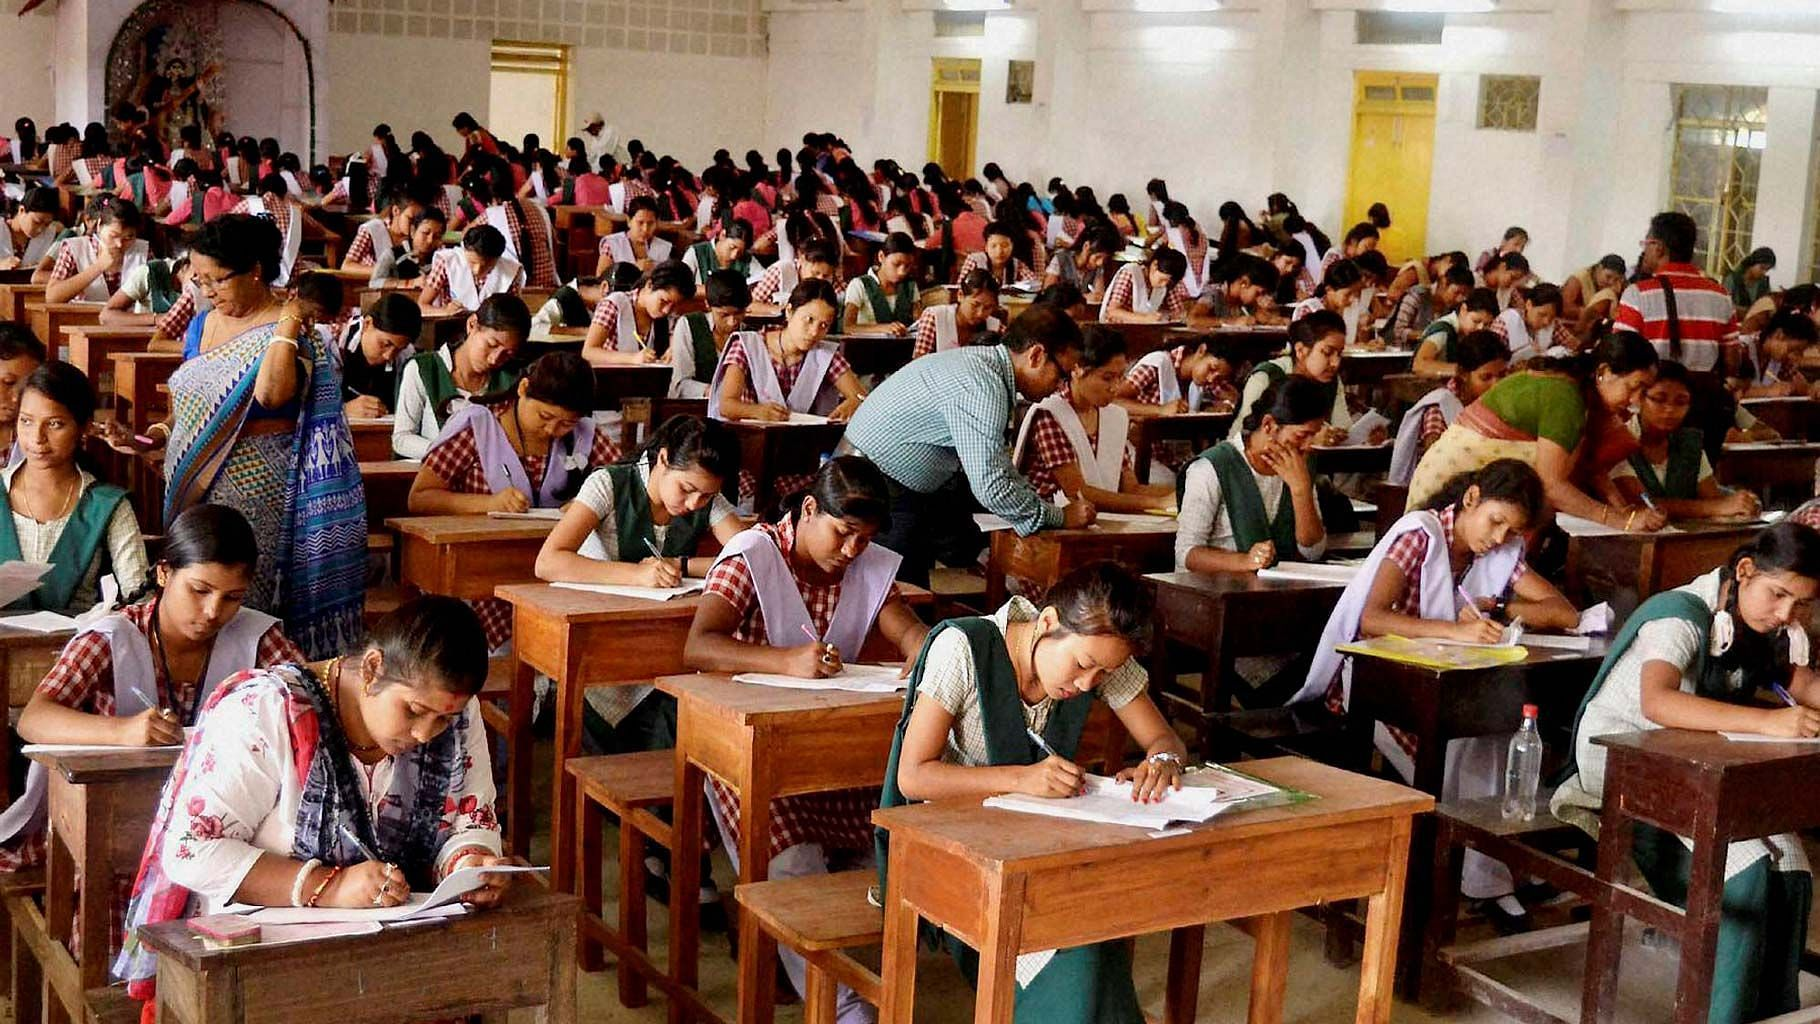 Image of students writing an exam